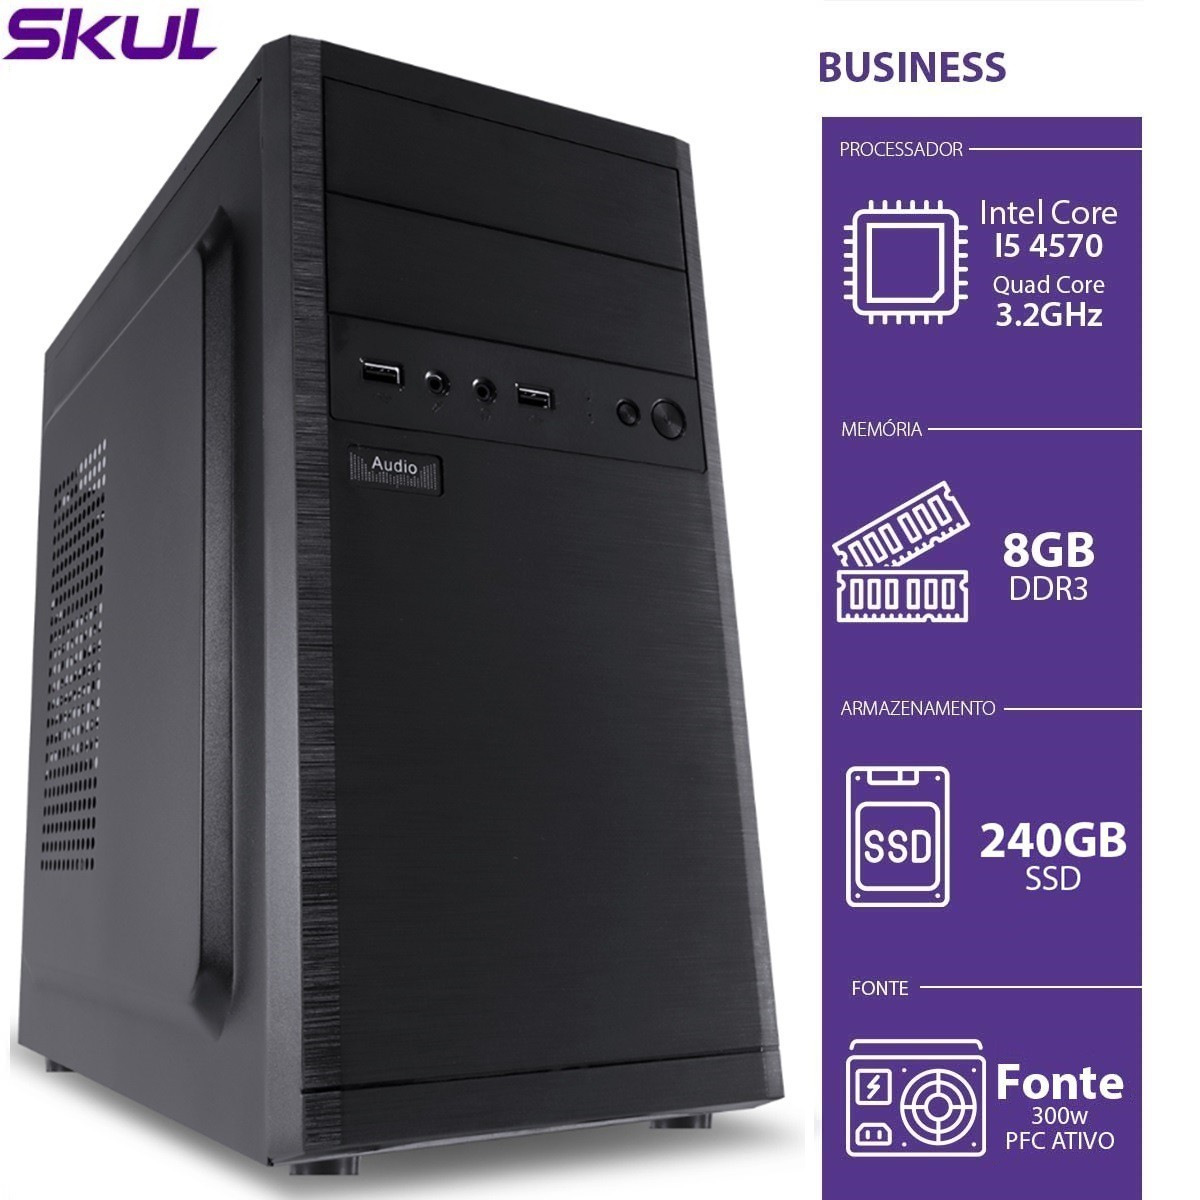 Computador Business B500 - I5-4570 3.2GHZ 8GB DDR3 SSD 240GB HDMI/VGA Fonte 300W